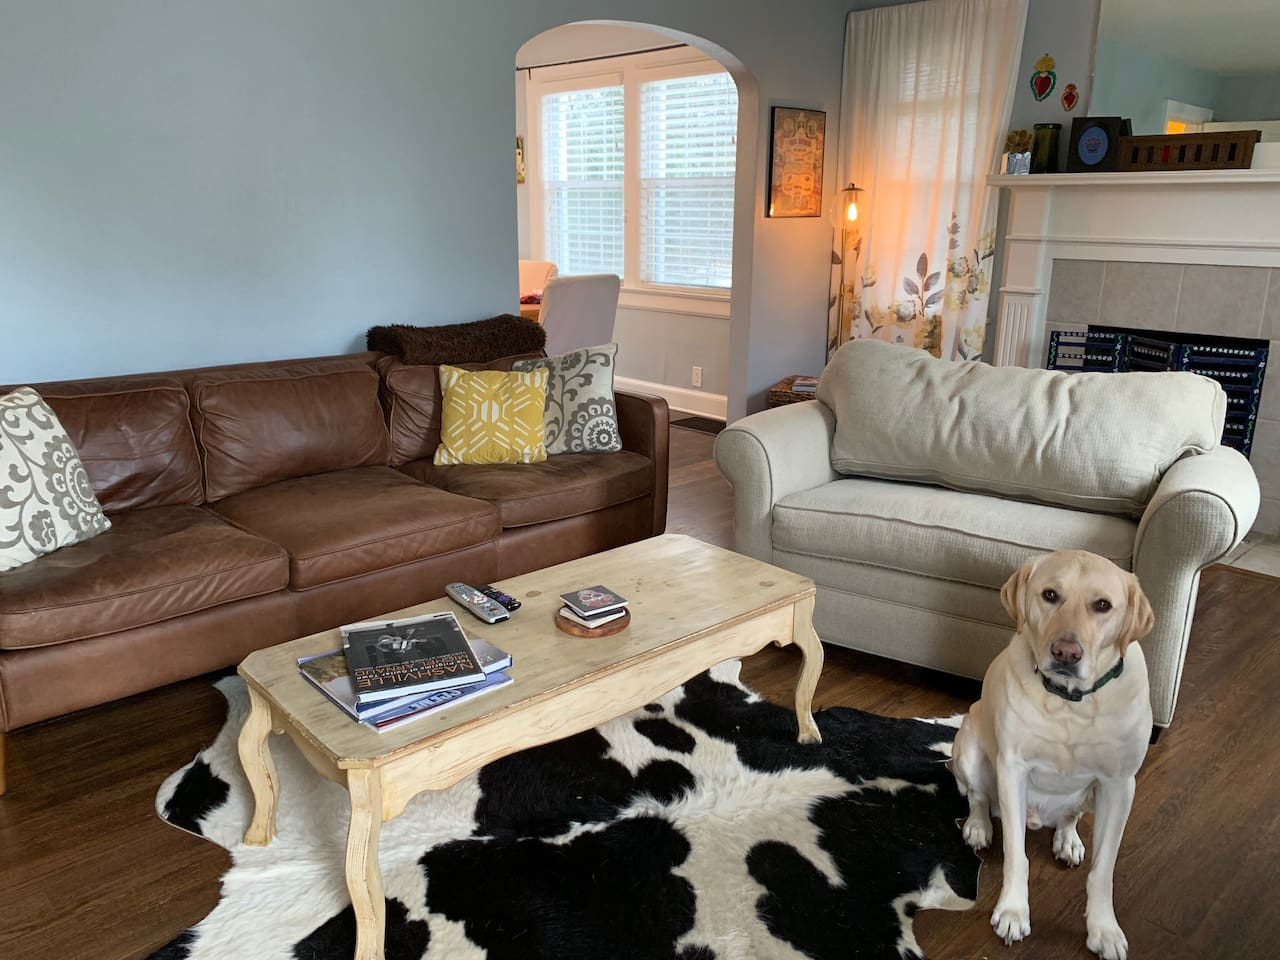 Living room...my dog thinks every time I take pictures that he should pose!